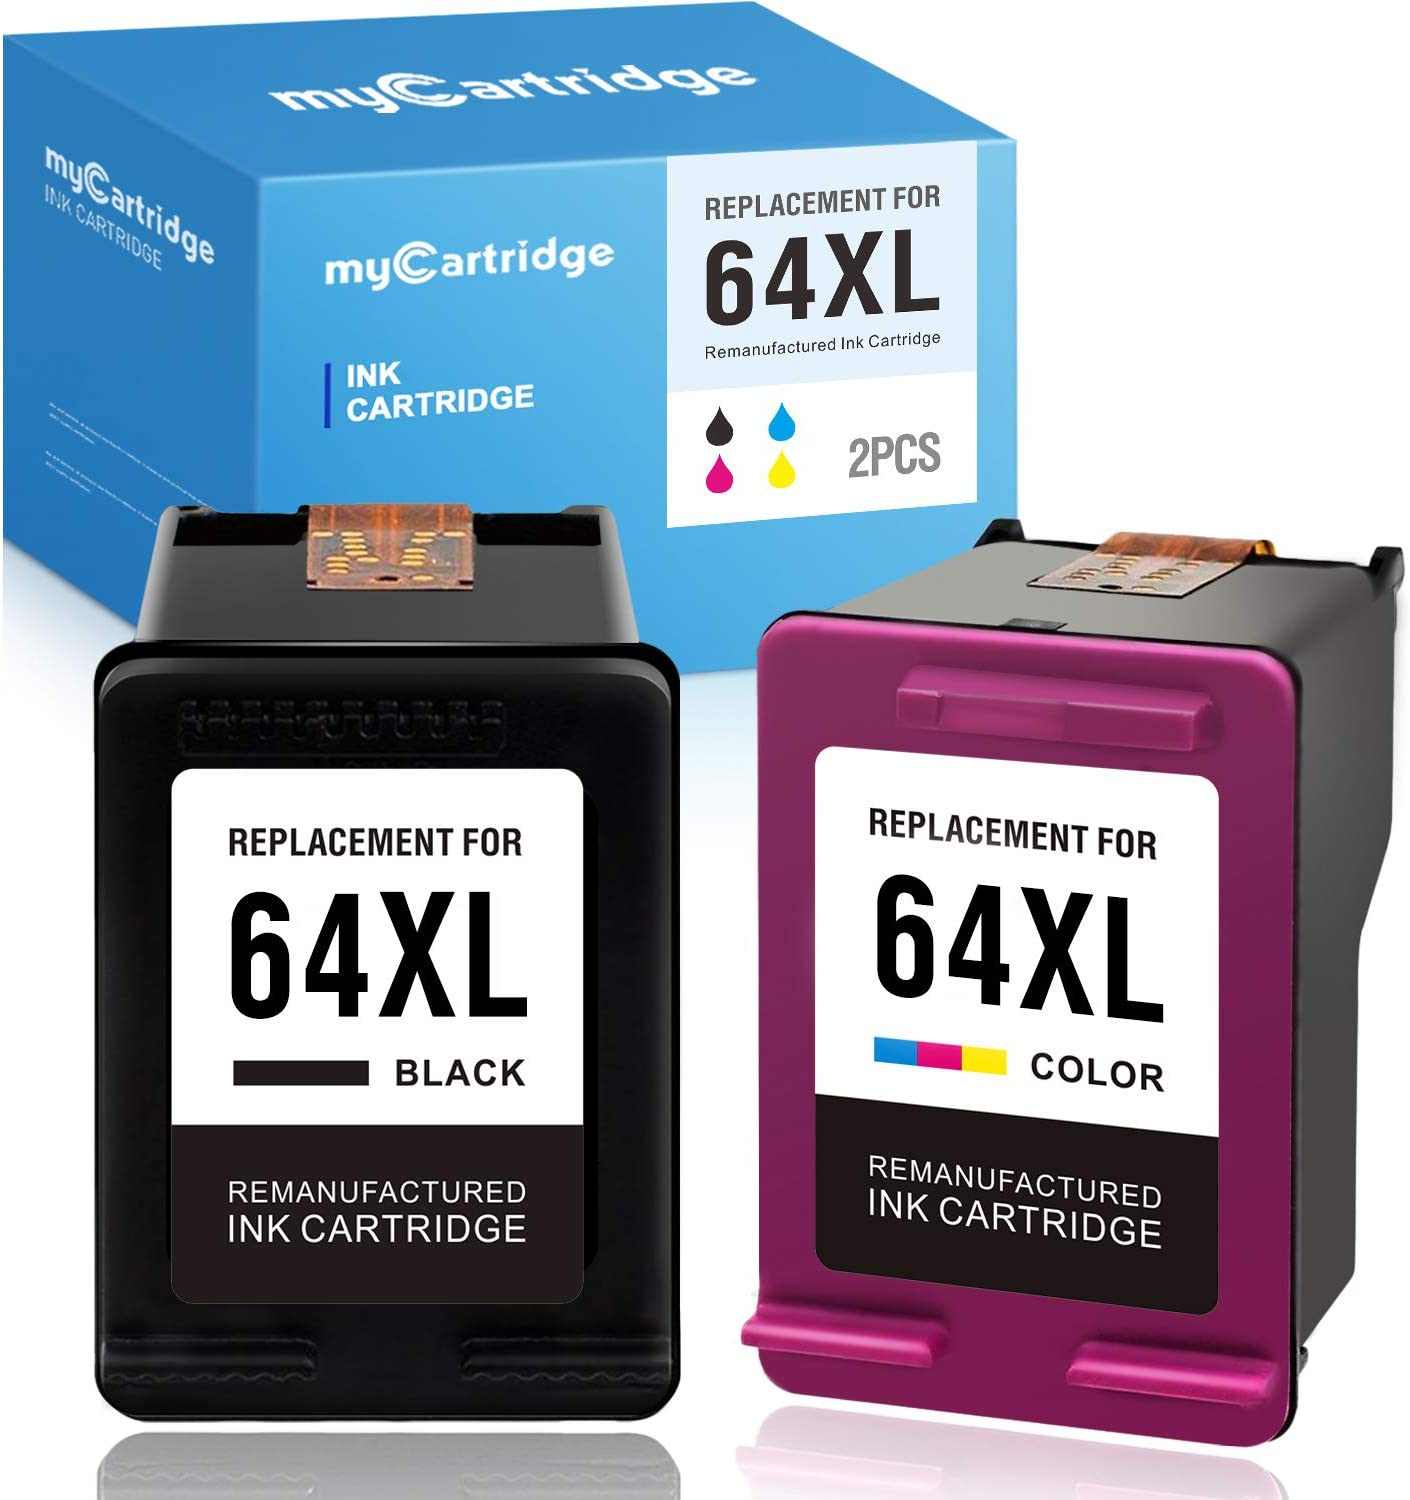 myCartridge Remanufactured Ink Cartridge Replacement for Hp 64 64XL Fit Hp Tango x, Envy Photo 7855 7858 7155 6220 6230 6252 6255 6258 7820 7822 7830 7134 7164 7120 (1 Black, 1 Tri-Color)